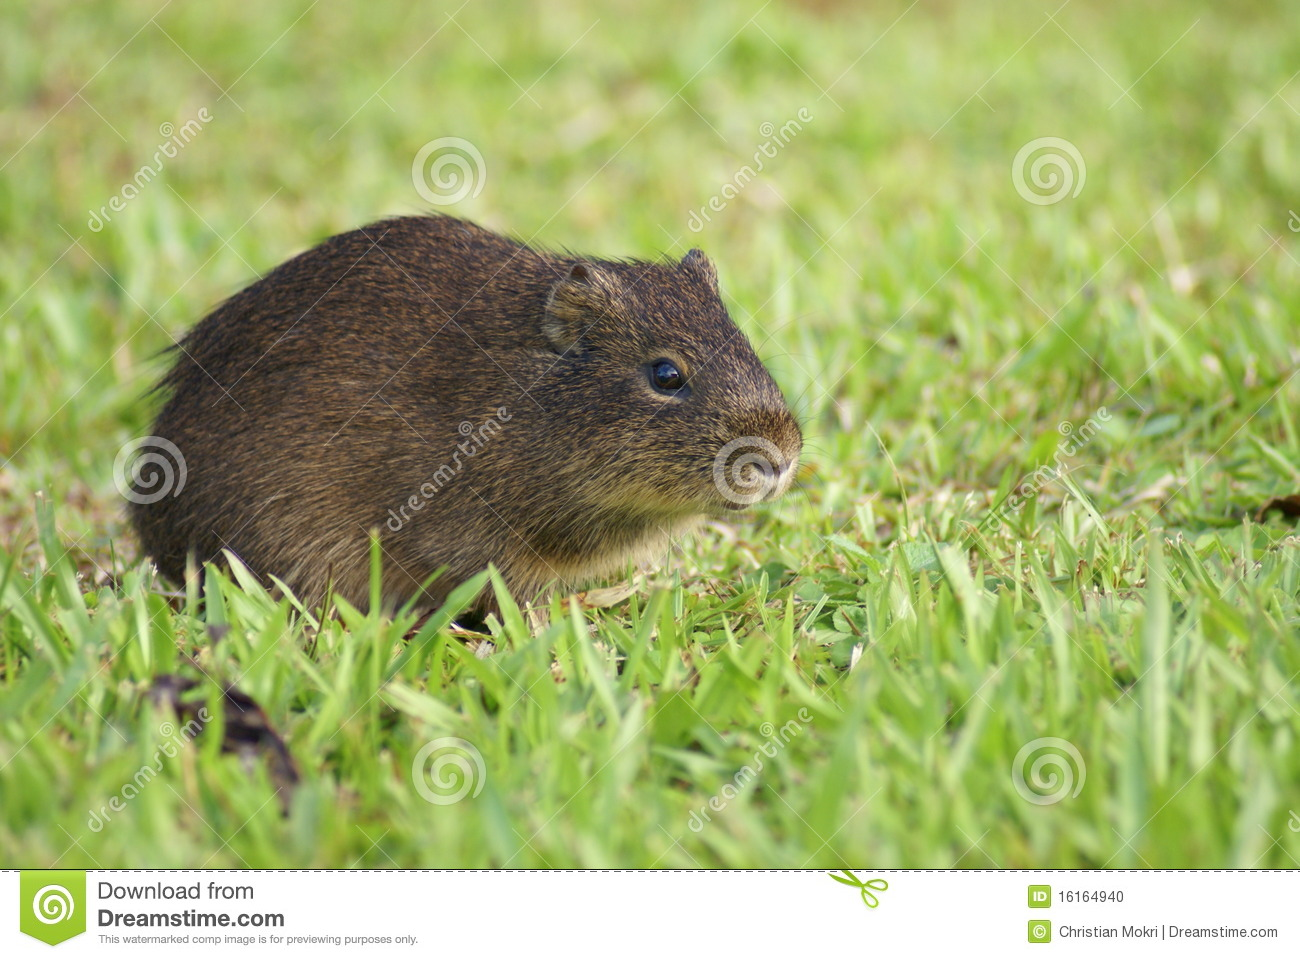 Small and cute mammal in